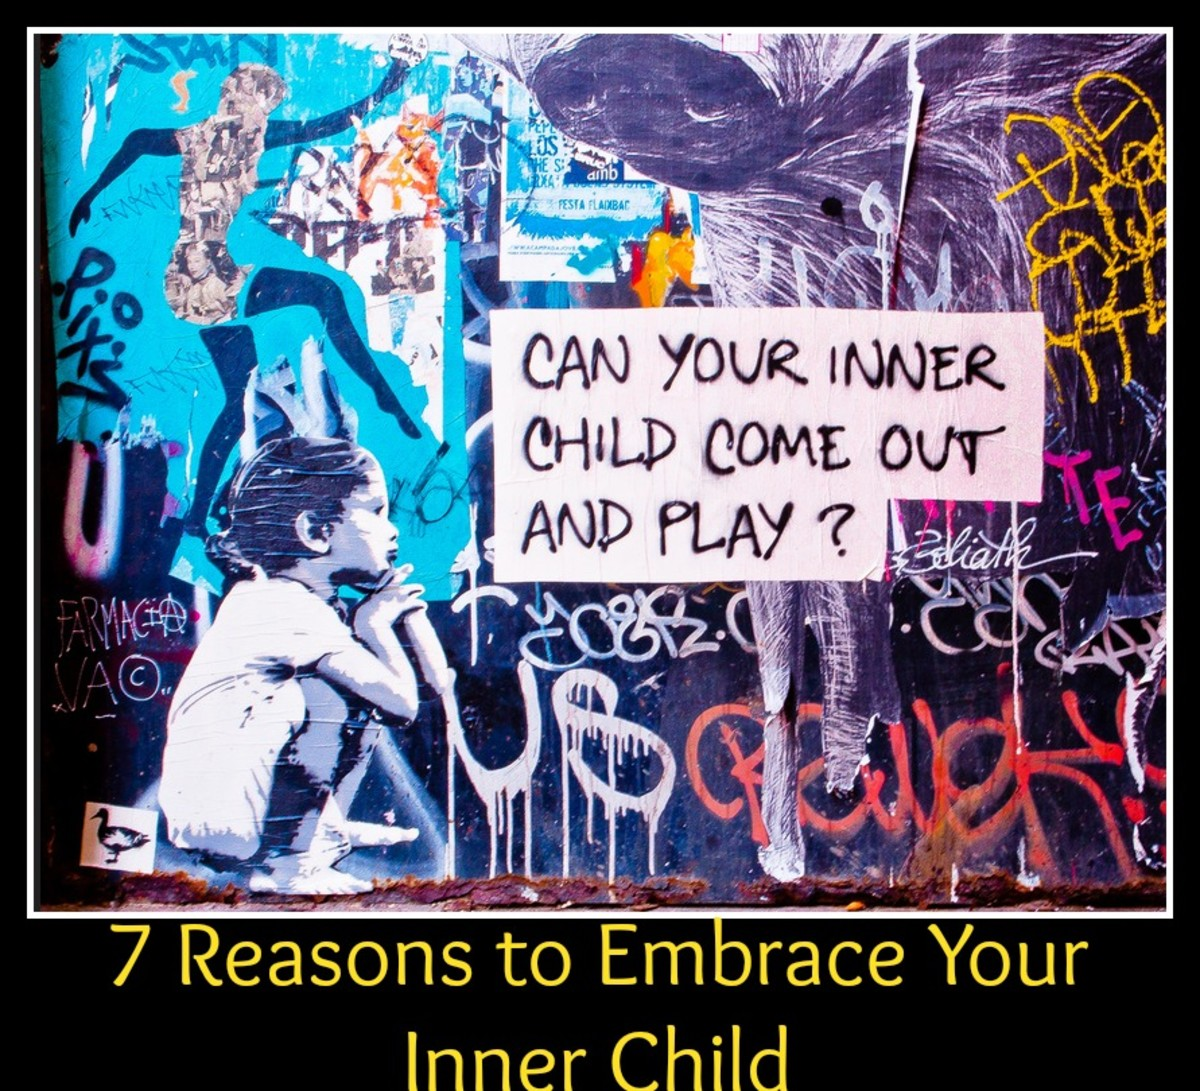 7 Reasons to Embrace Your Inner Child